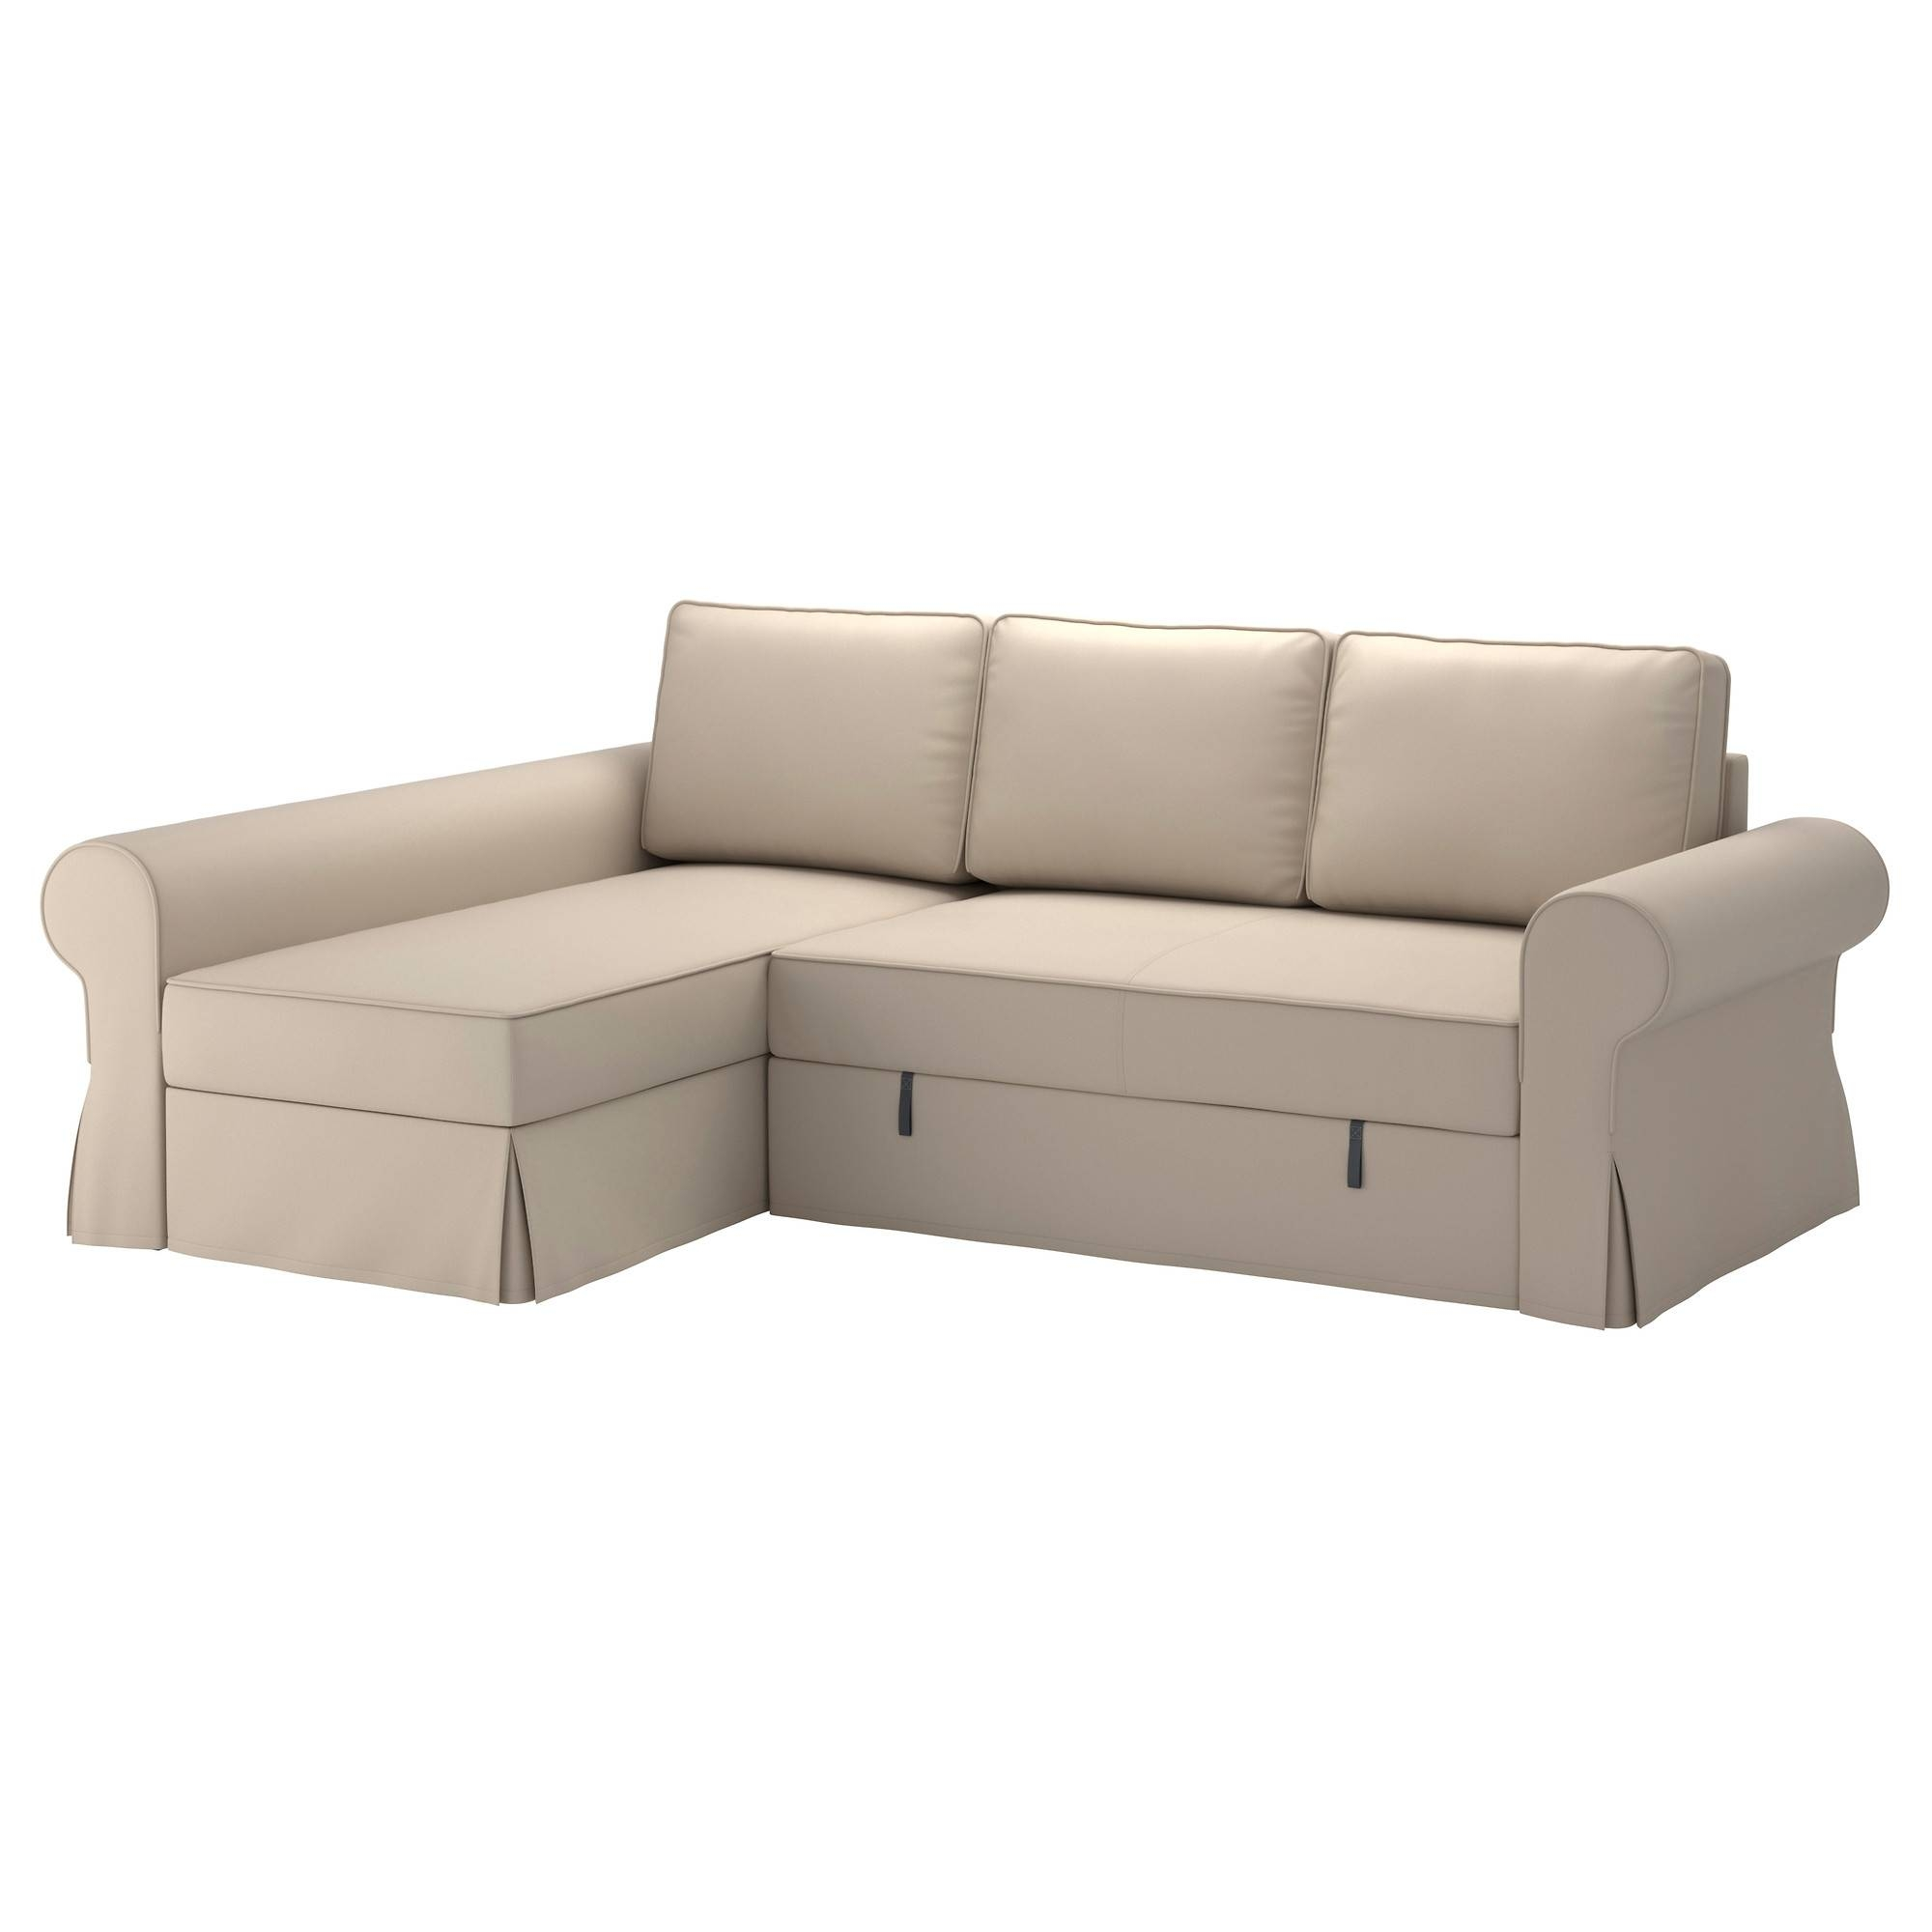 Sofas: Classic Meets Contemporary Chaise Sofa Bed For Ideal Living with Ikea Sectional Sofa Sleeper (Image 24 of 25)